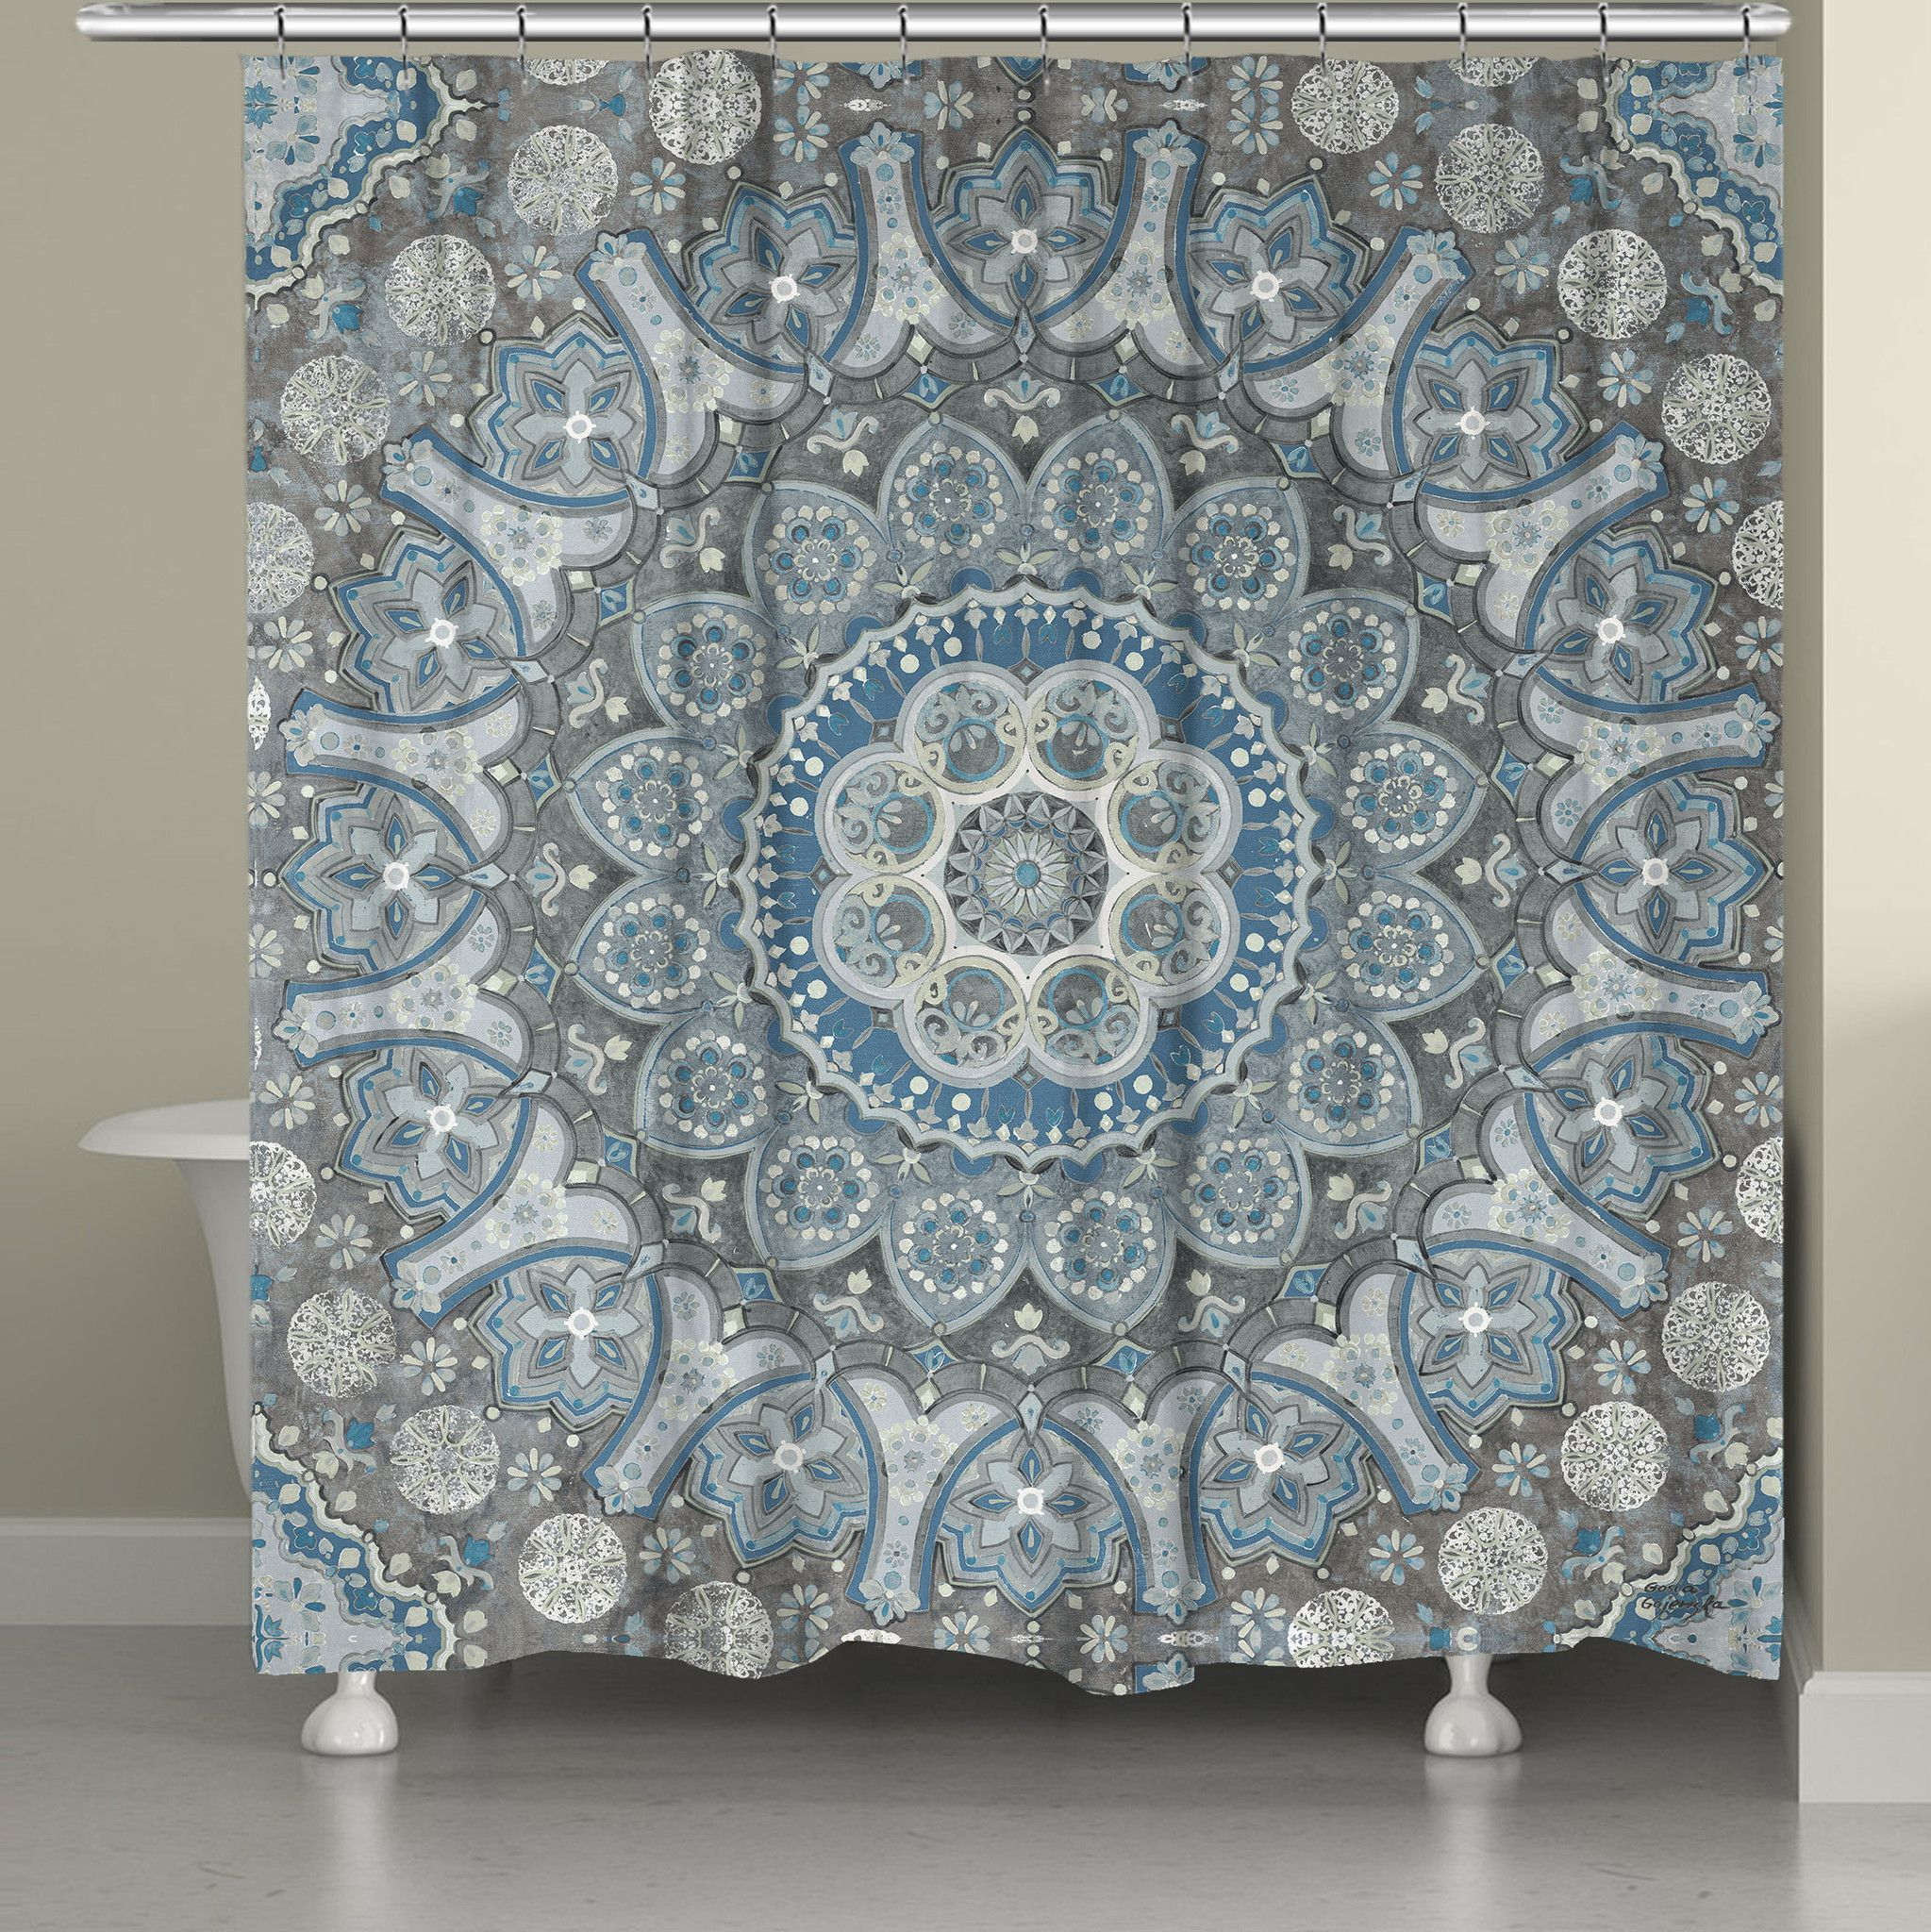 Ice Mandala Shower Curtain Add A Hint Of Boho Flair To Your Bathroom With This Calming Blue And Grey Design All Our Products Are Digitally